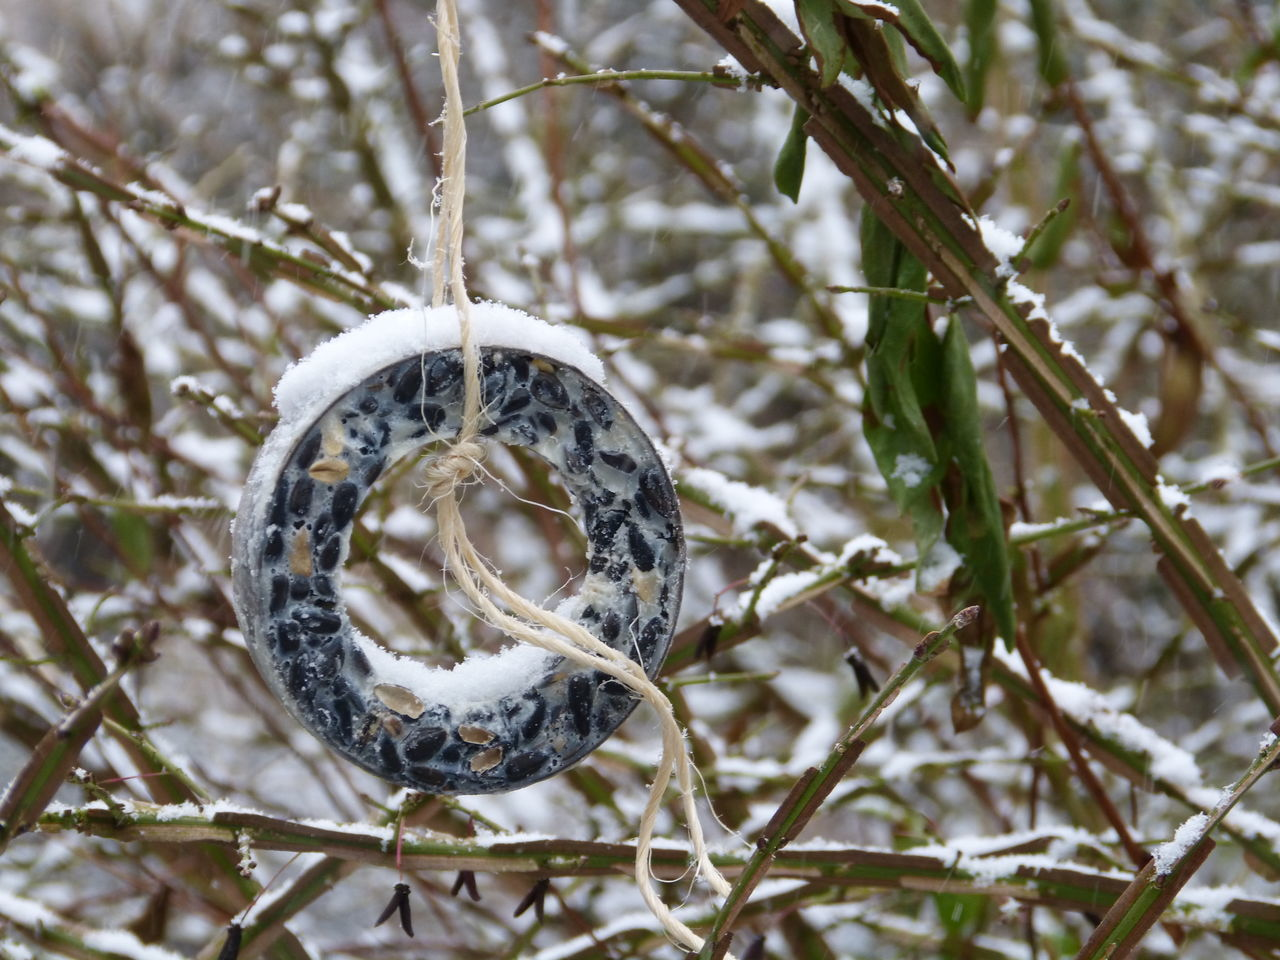 Silent moment in winter time ... :-) Beauty In Nature Bird Food Bird Food! Bird Life Bird Nest Branch Bushes And Flowers Bushes And Trees Close-up Cold Temperature Day Focus On Foreground Food Ring Freedom Of Life Nature Nature Photography No People Outdoors Silence Of Nature Snow Snow Day Tree Winter Food Winter Food For Wild Life Winter Wonderland